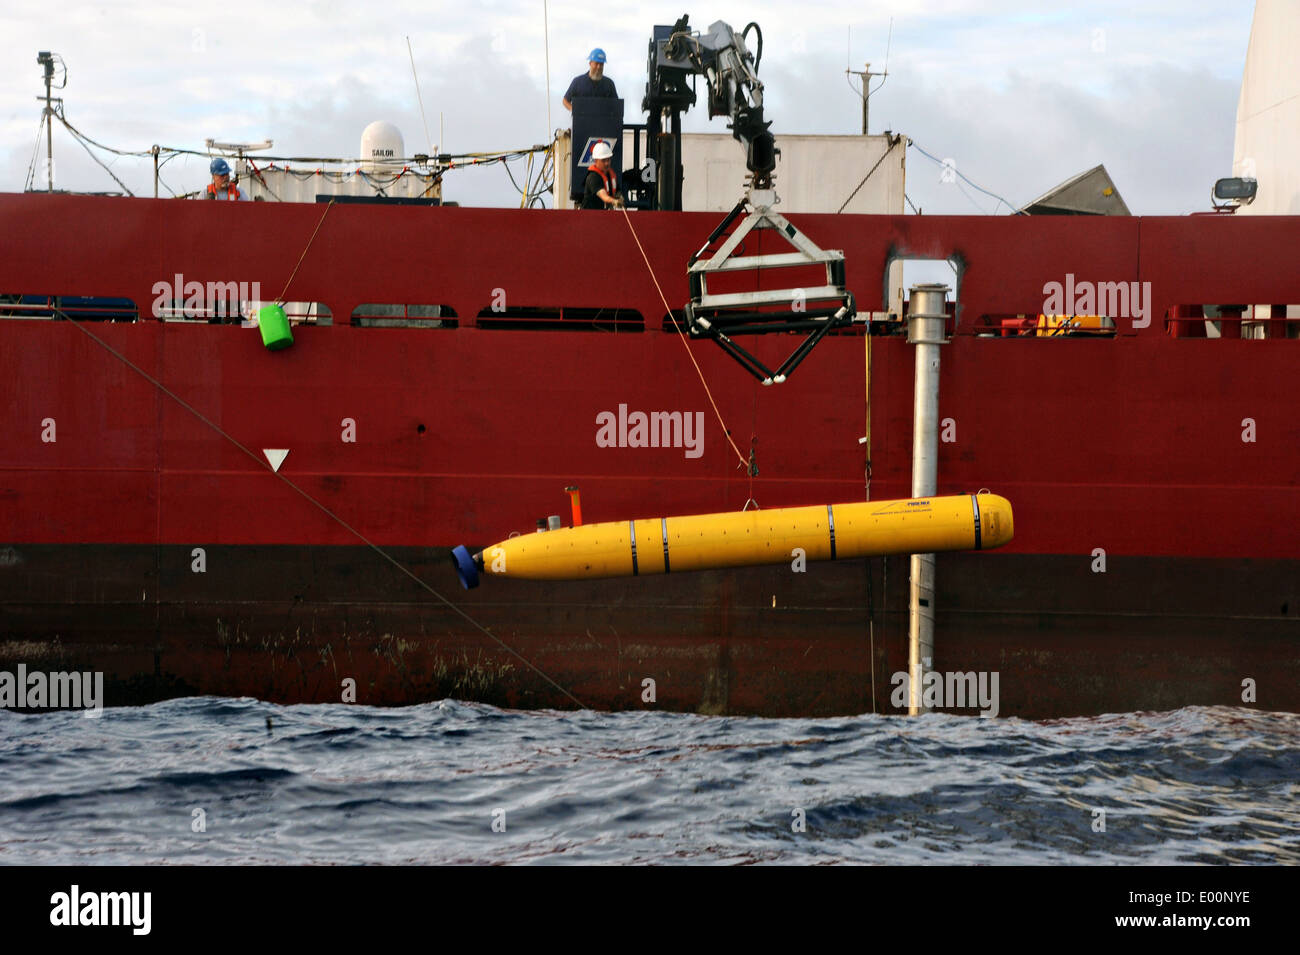 US Navy Contractors lower the Bluefin-21 autonomous submersible into the ocean from the deck of the ADV Ocean Shield April 26, 2014 in the South Indian Ocean. The unmanned submarine is being used to search for missing Malaysia Airlines flight MH 370. - Stock Image